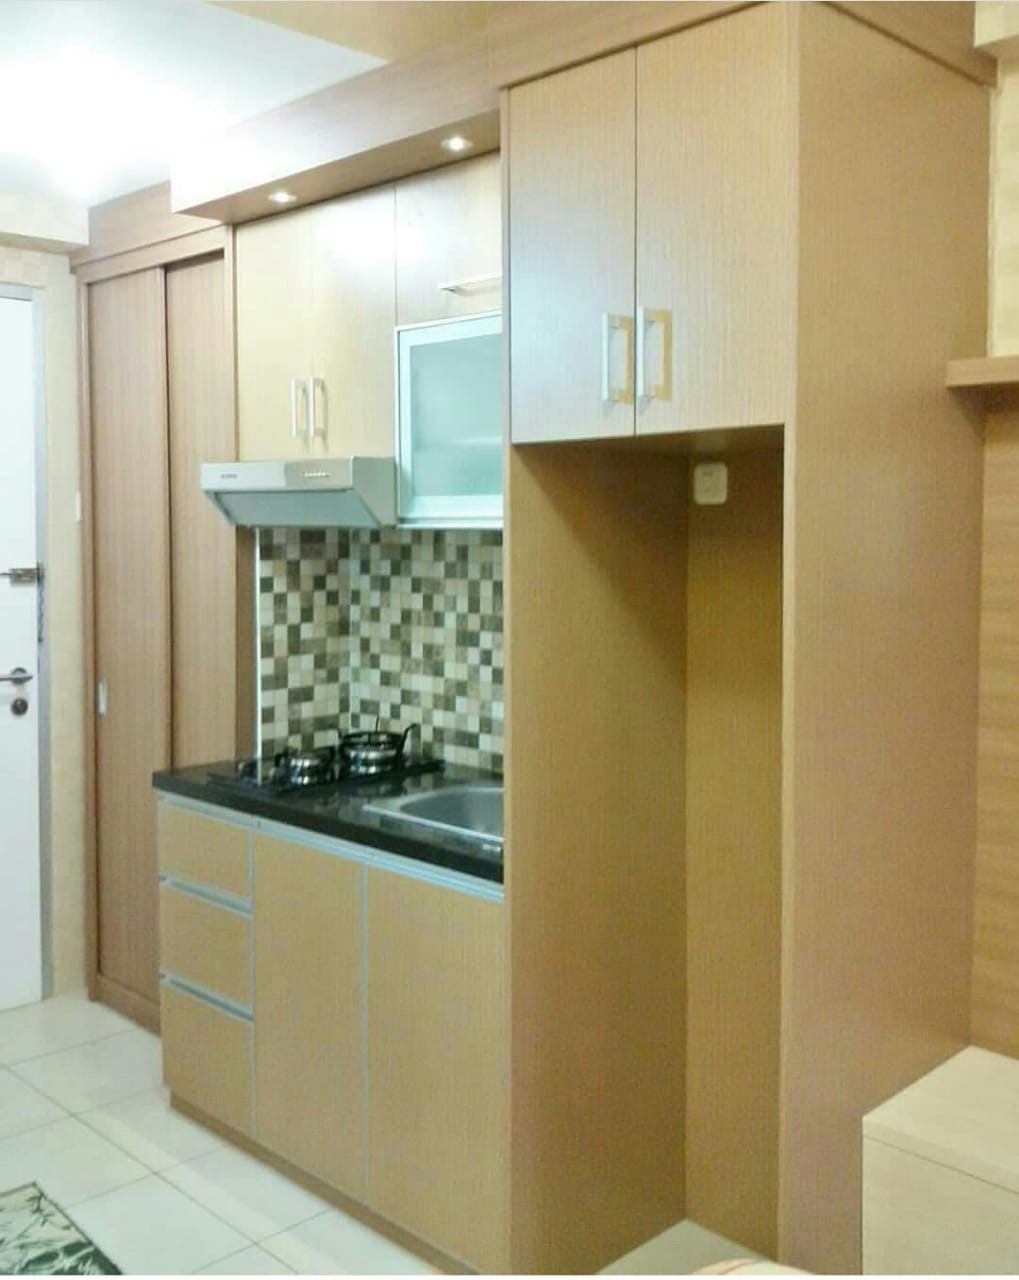 Kitchen set minimalis hpl kotagede legend furniture 0822 429 77998